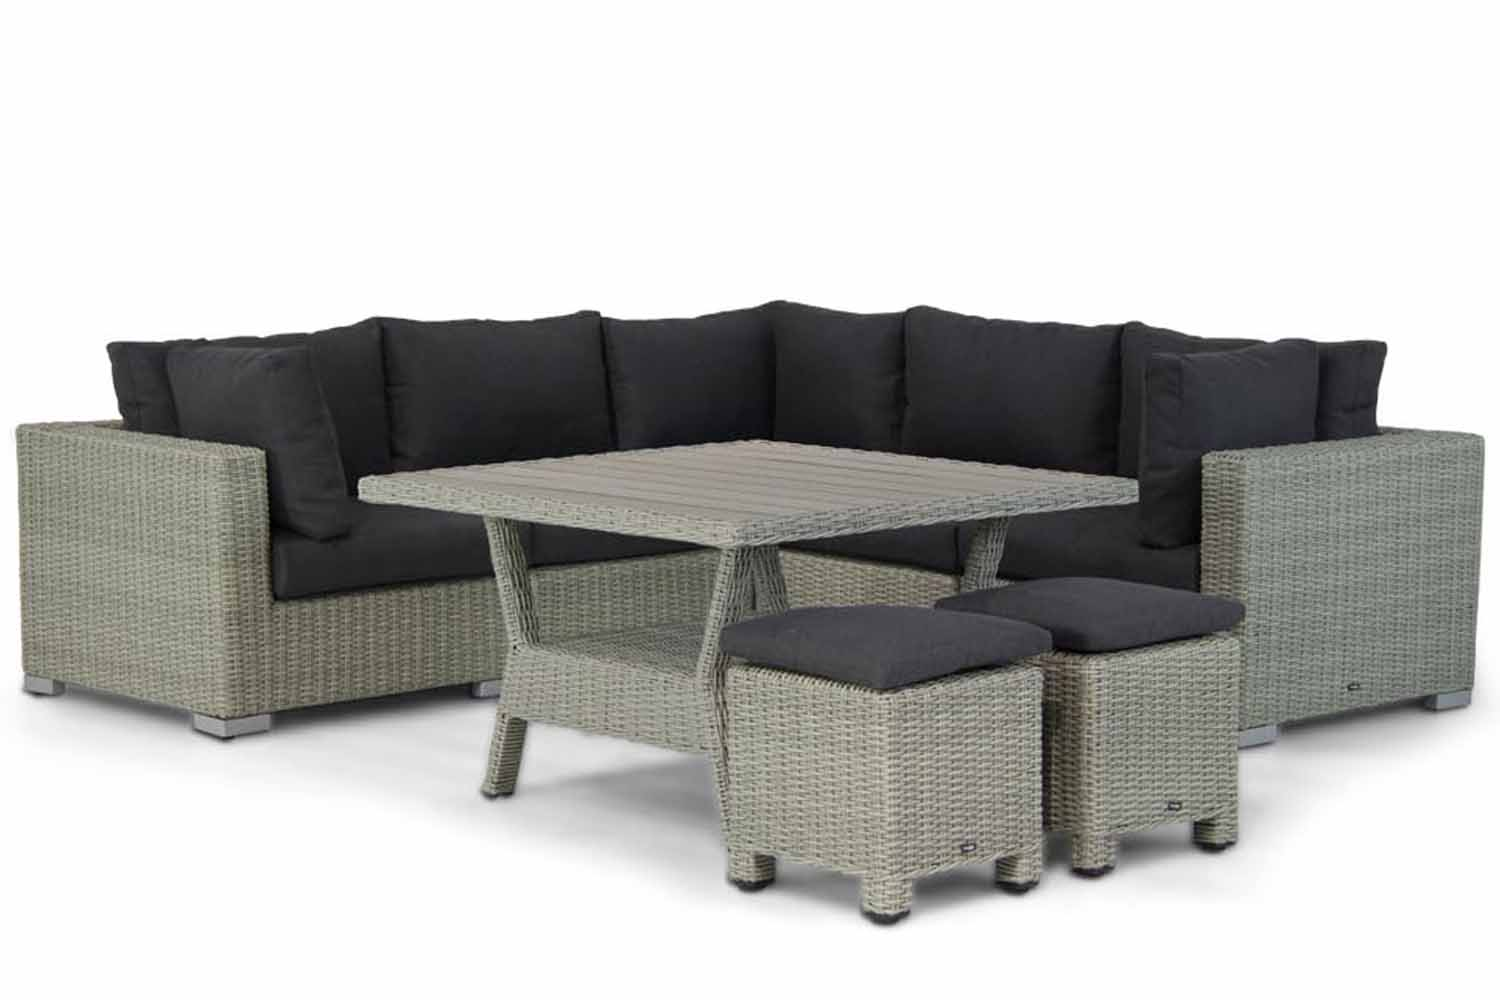 Garden Collections Toronto/Mayflower 120 cm hoek loungeset 6-delig